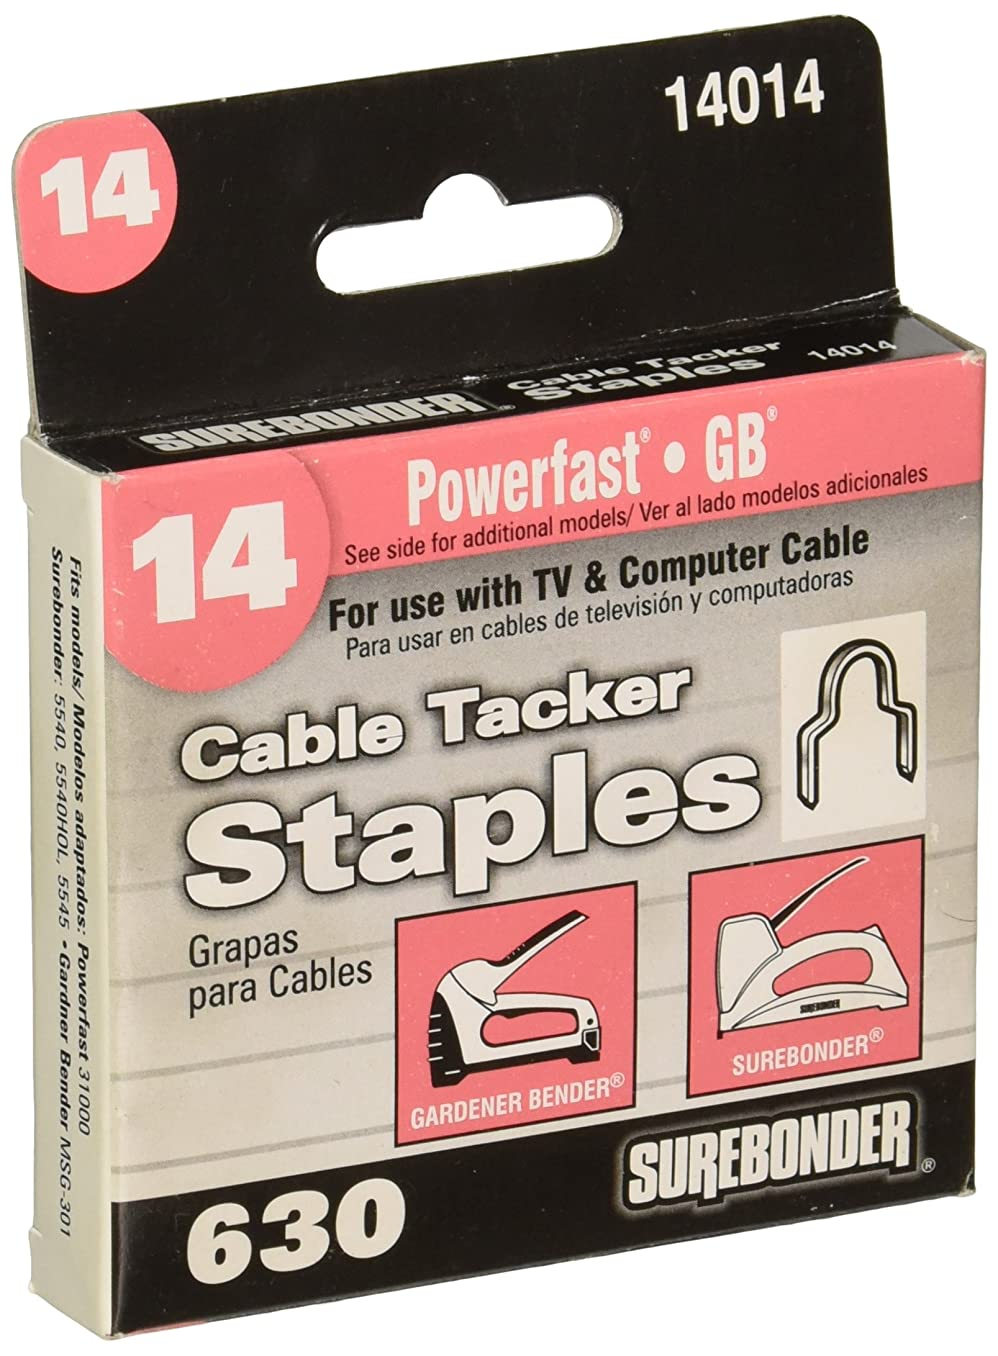 Surebonder 14014   Round Crown Cable Tacker Staple, Fits up to 1/4-Inch Round Cable, 630 Count